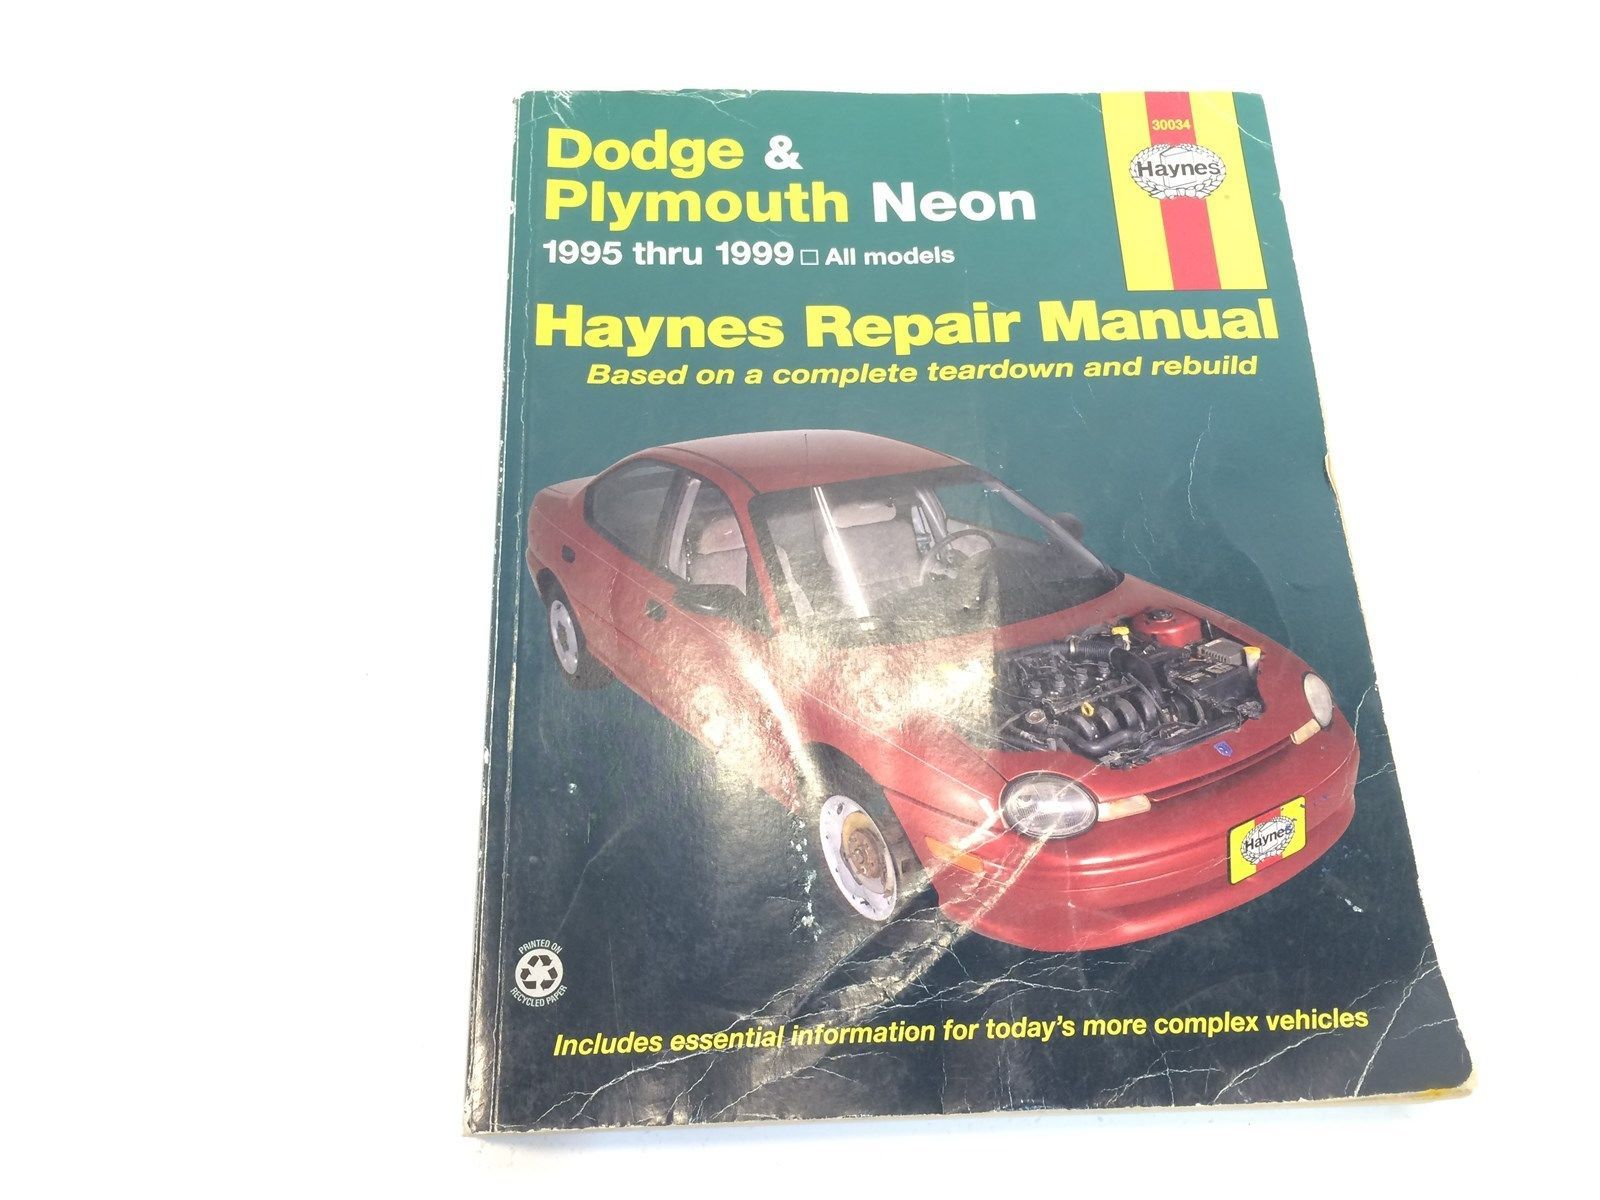 hight resolution of 1995 99 haynes dodge plymouth neon repair manual 7f6 30034 8 99